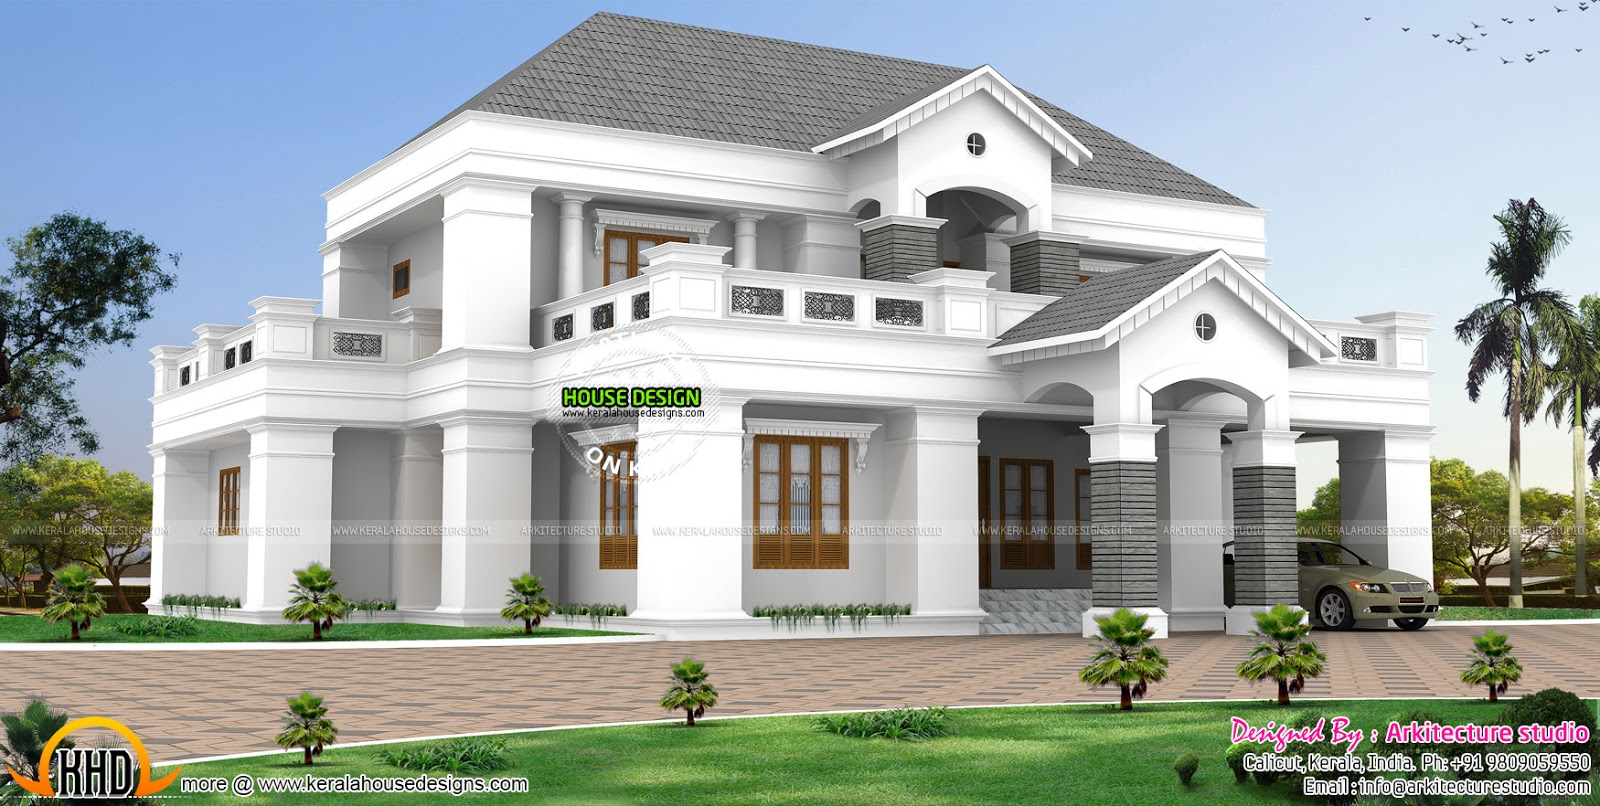 Luxurious pillar type home design kerala home design and for Designer in the house